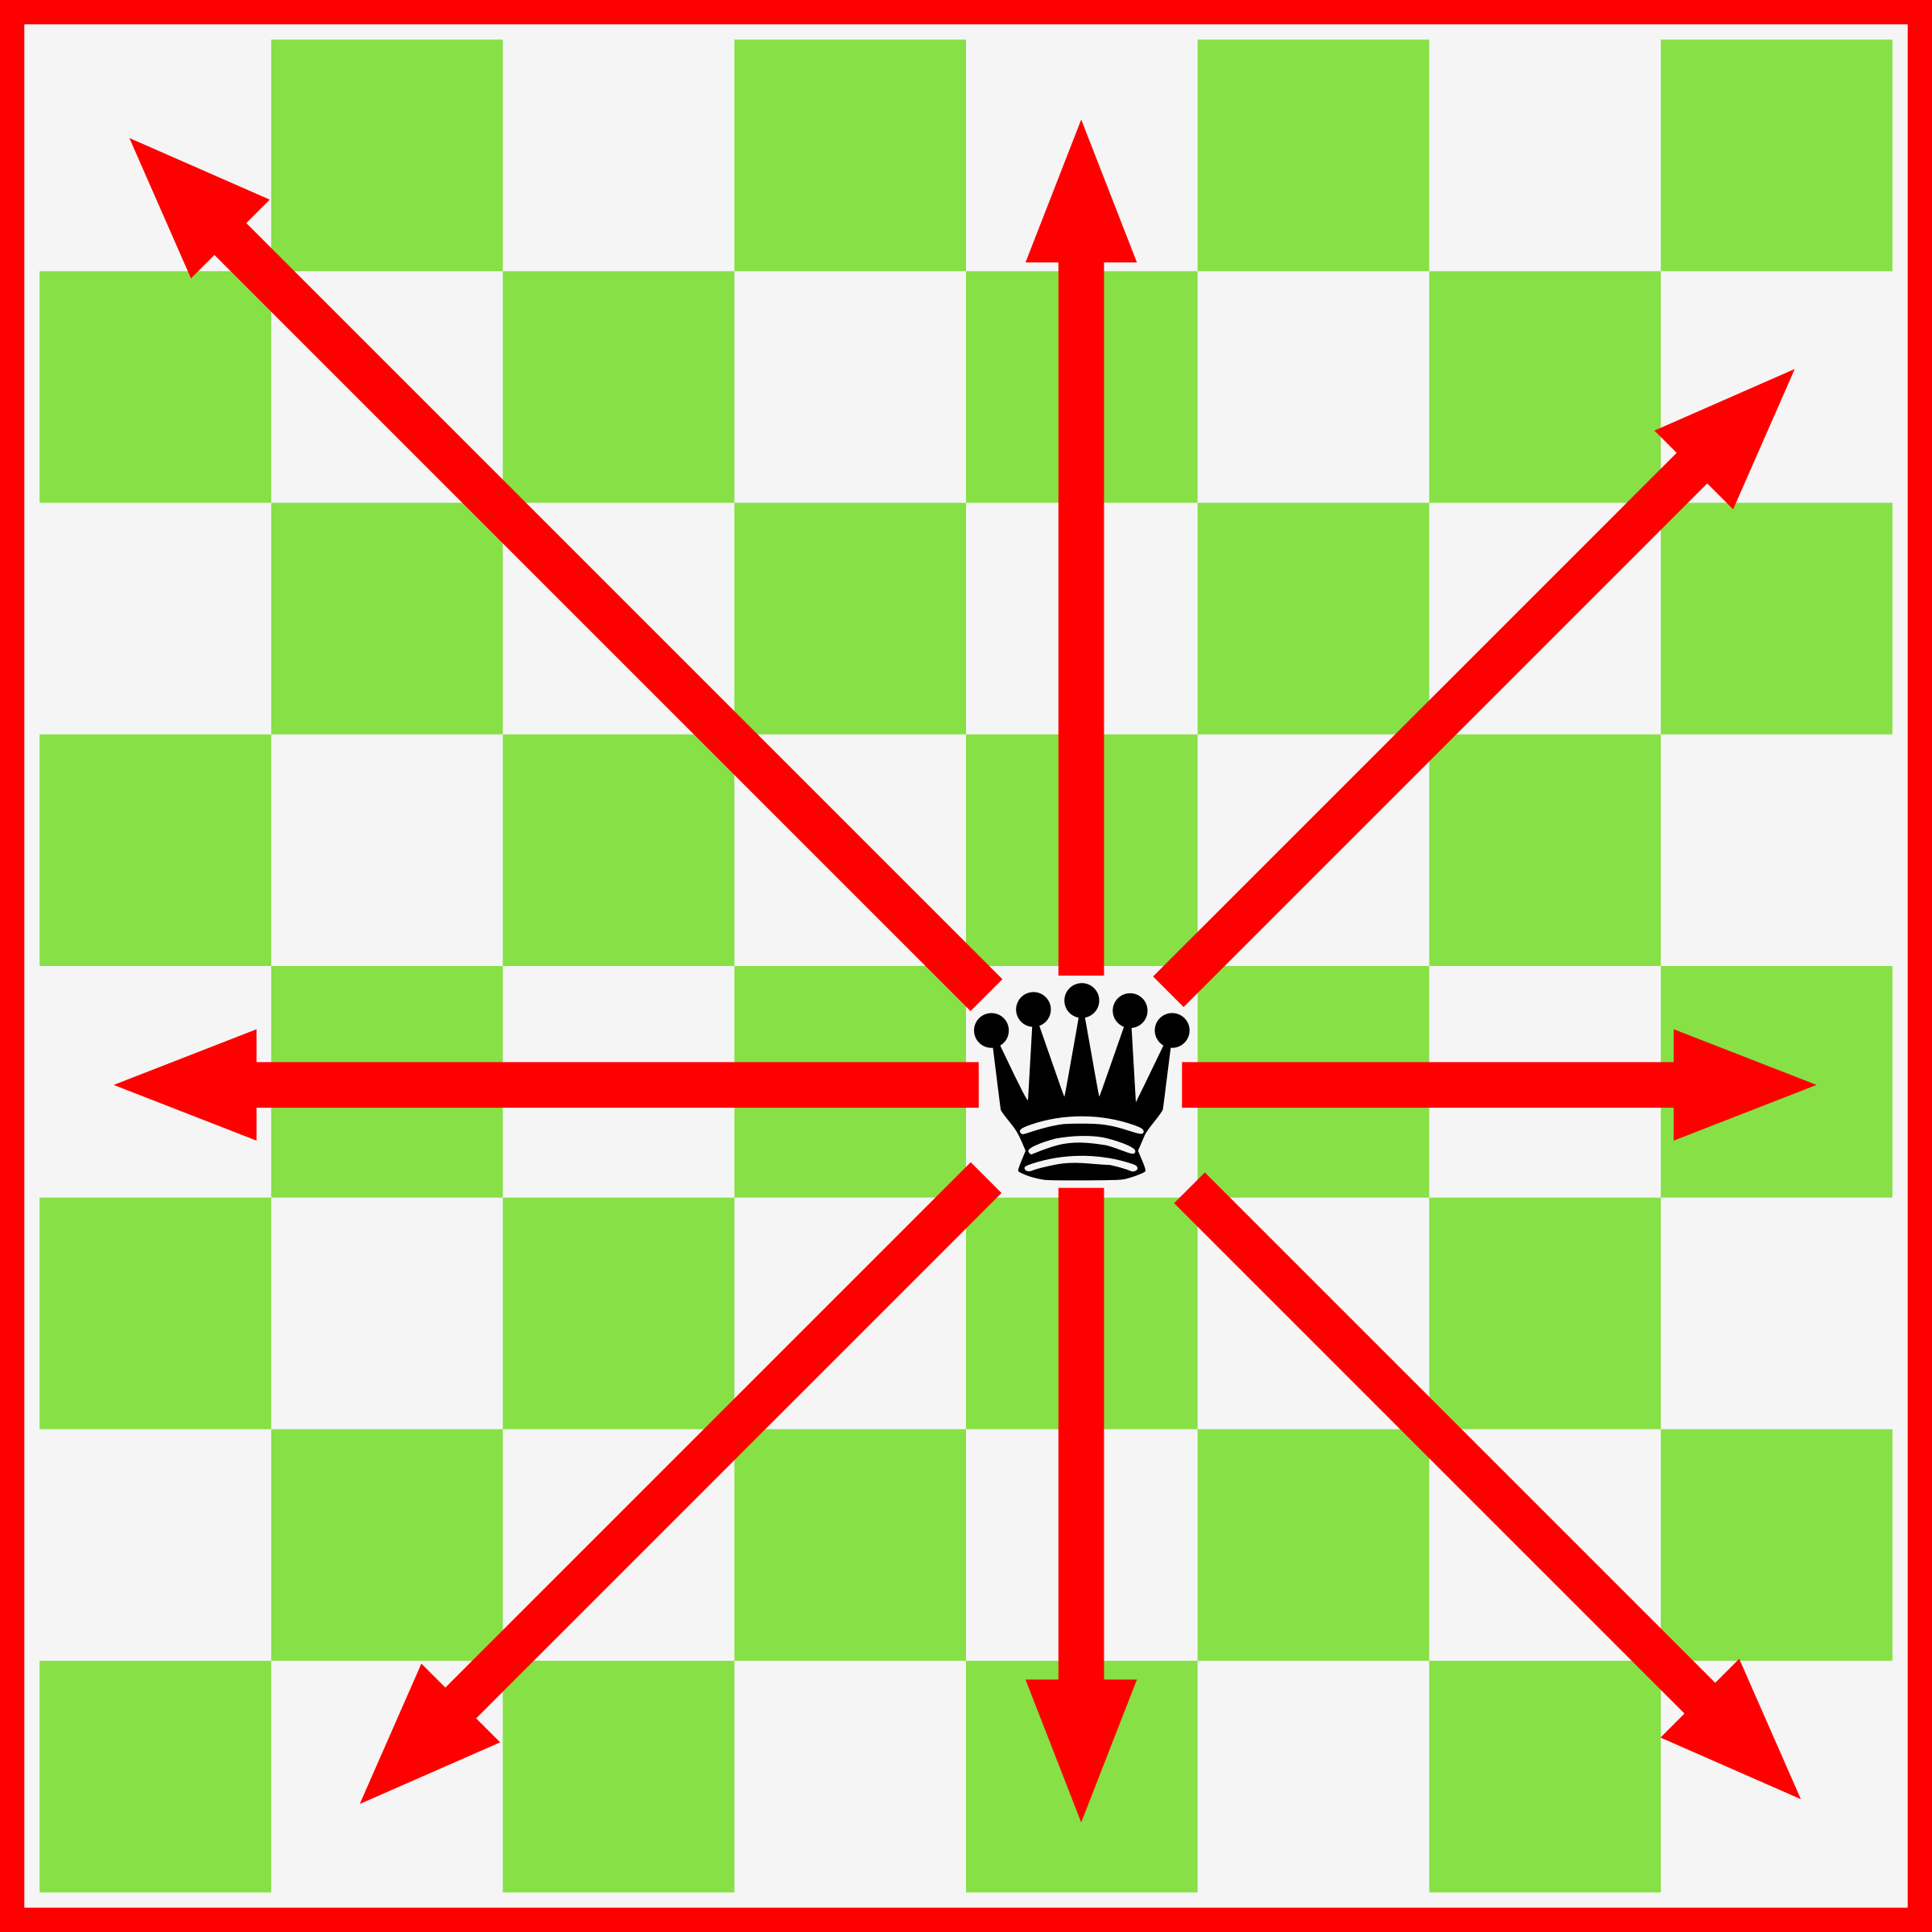 Chess Queen Movement / Movimiento Dama Ajedrez by DG-RA